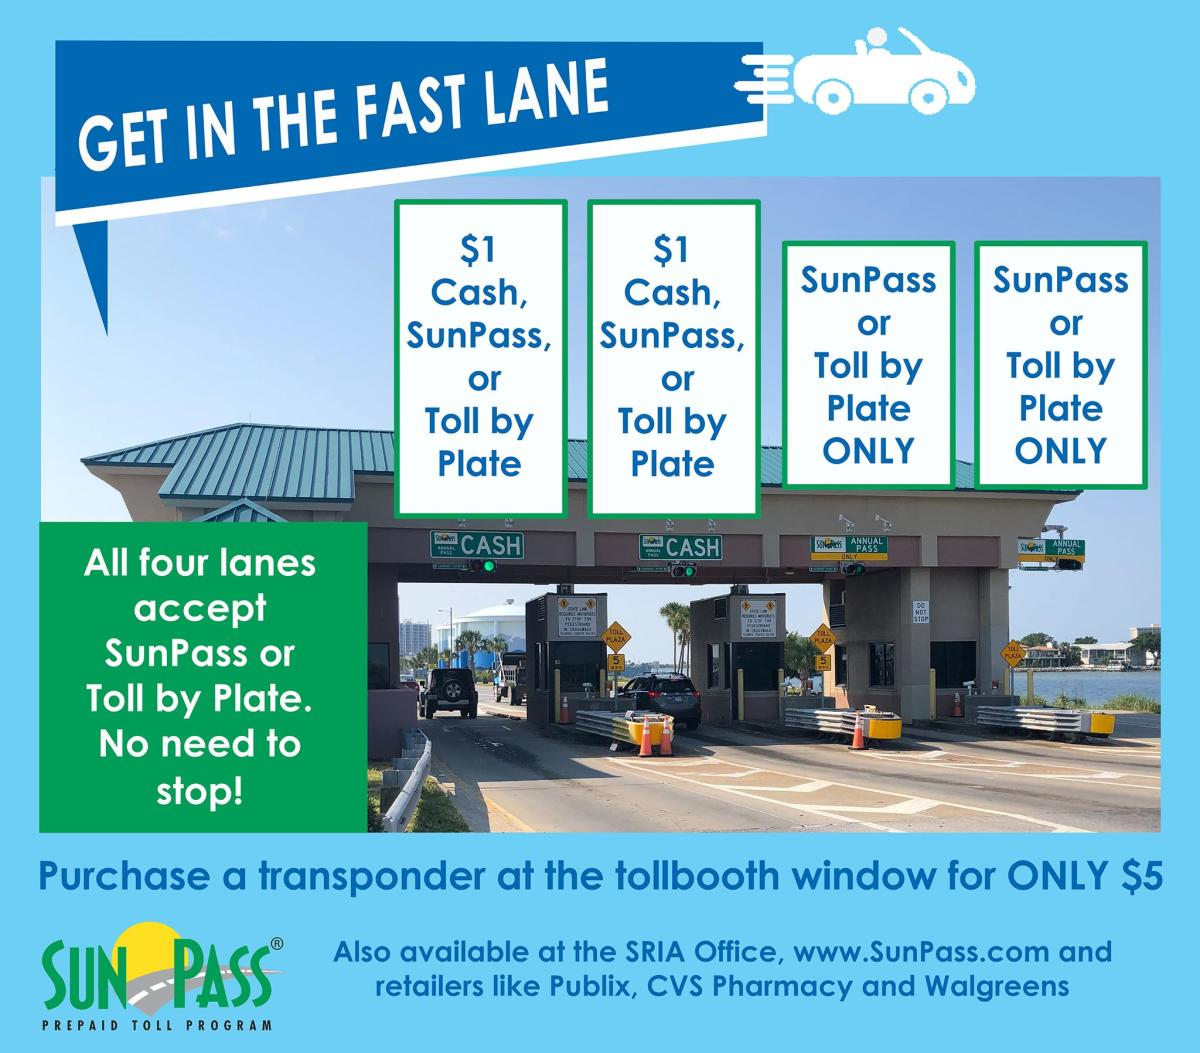 Sun Pass Toll Booth Information